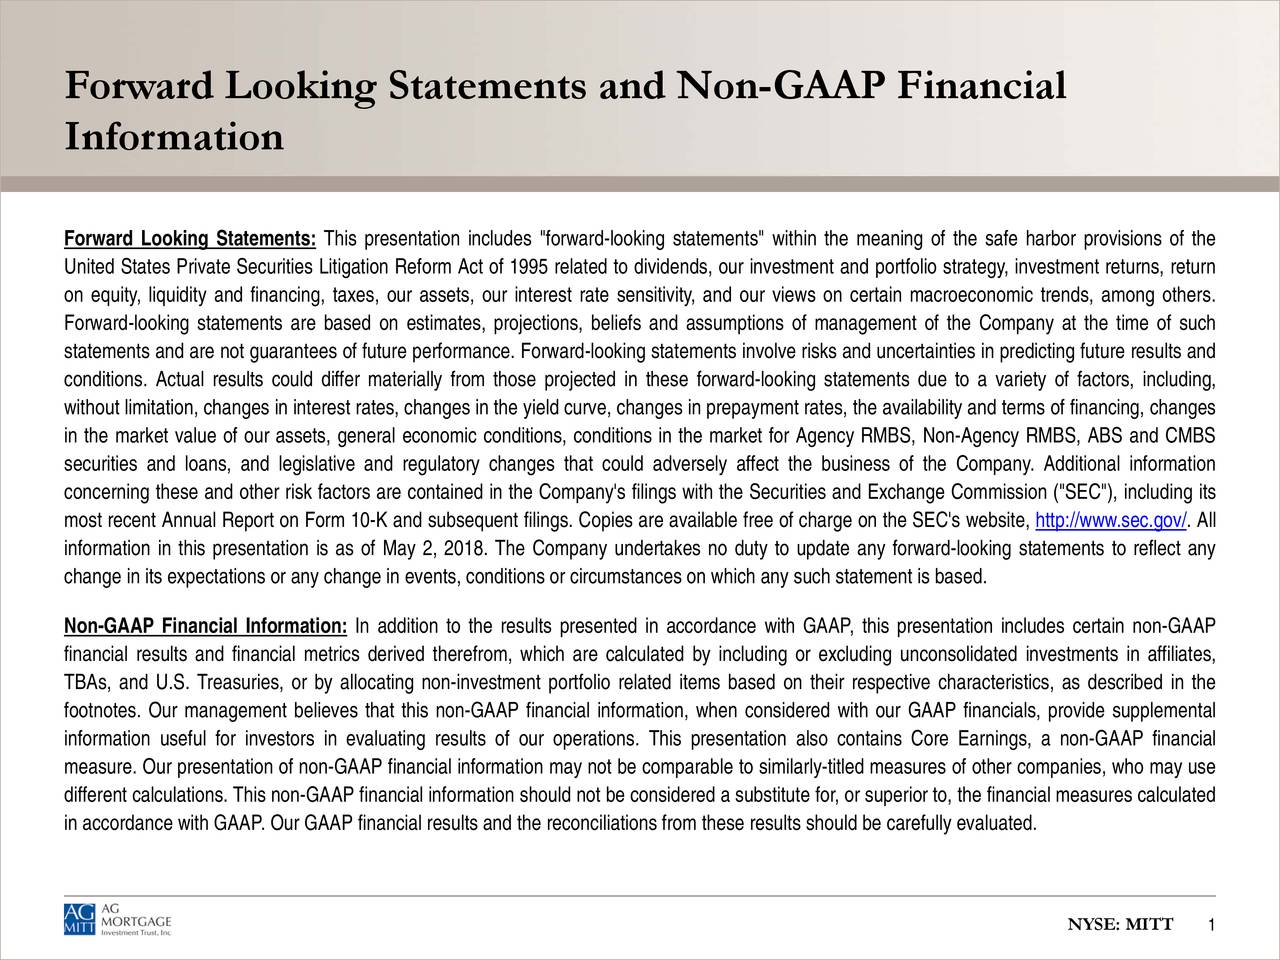 Forward Looking Statements and Non-GAAP Financial